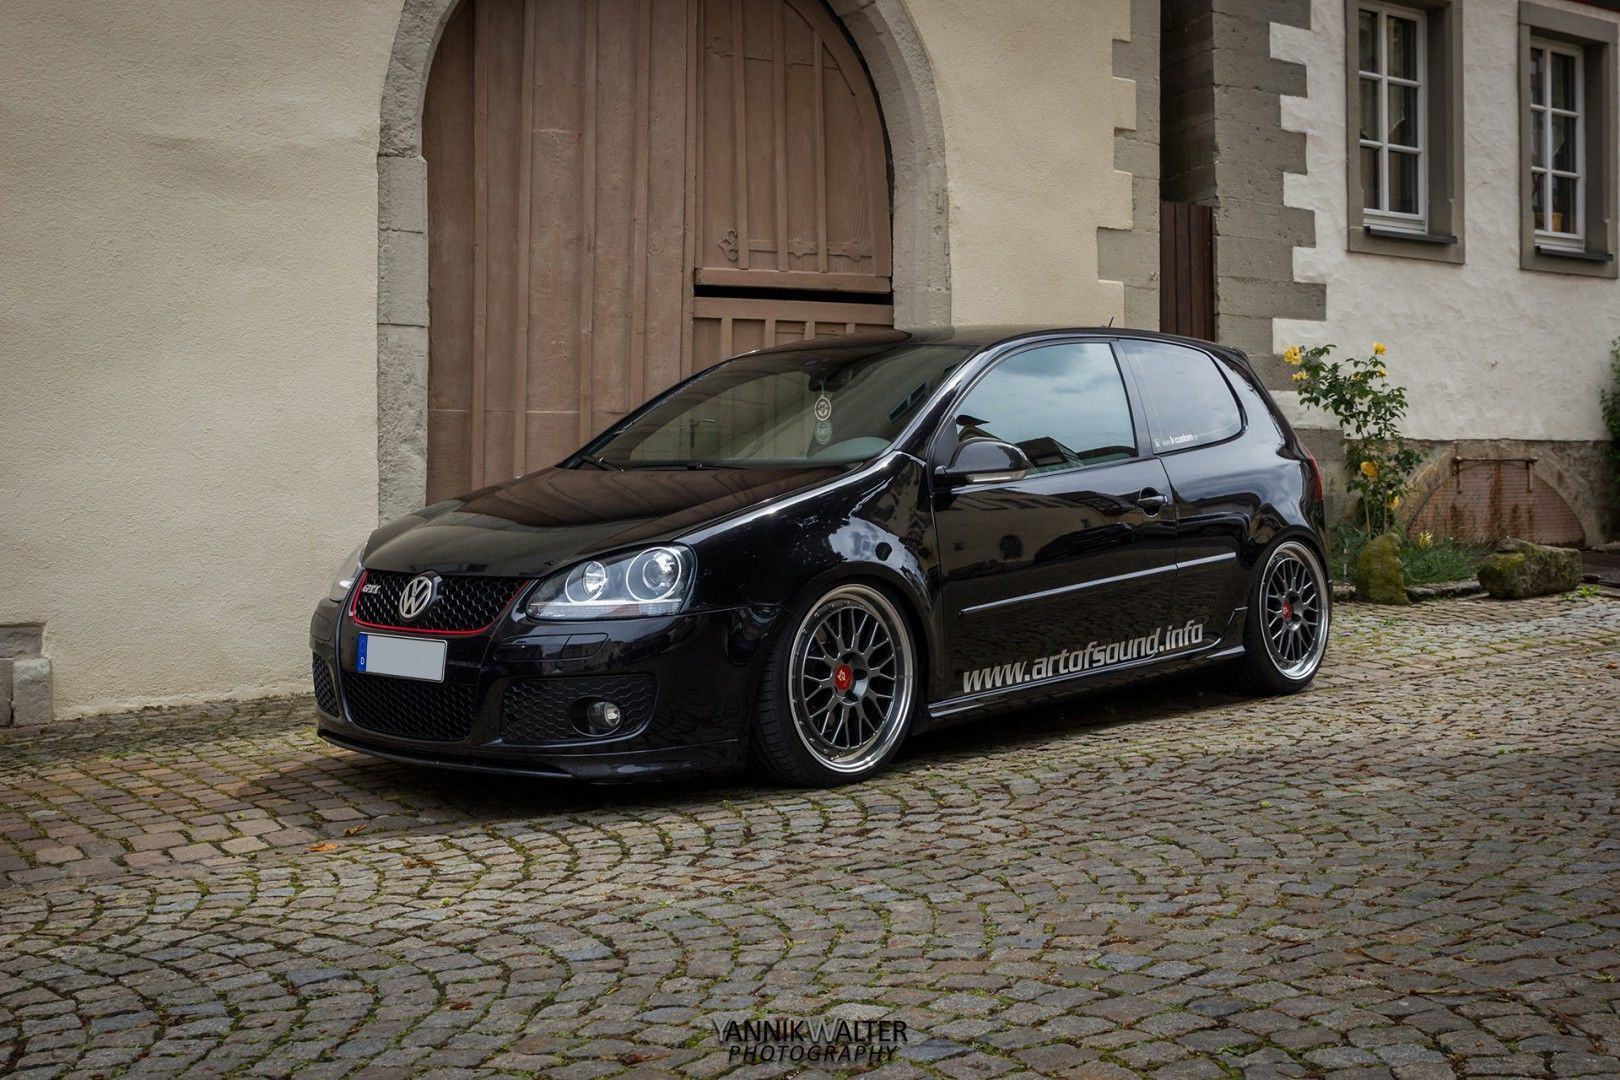 golf 6 gti r mit lv1 19 felgen von mbdesign. Black Bedroom Furniture Sets. Home Design Ideas